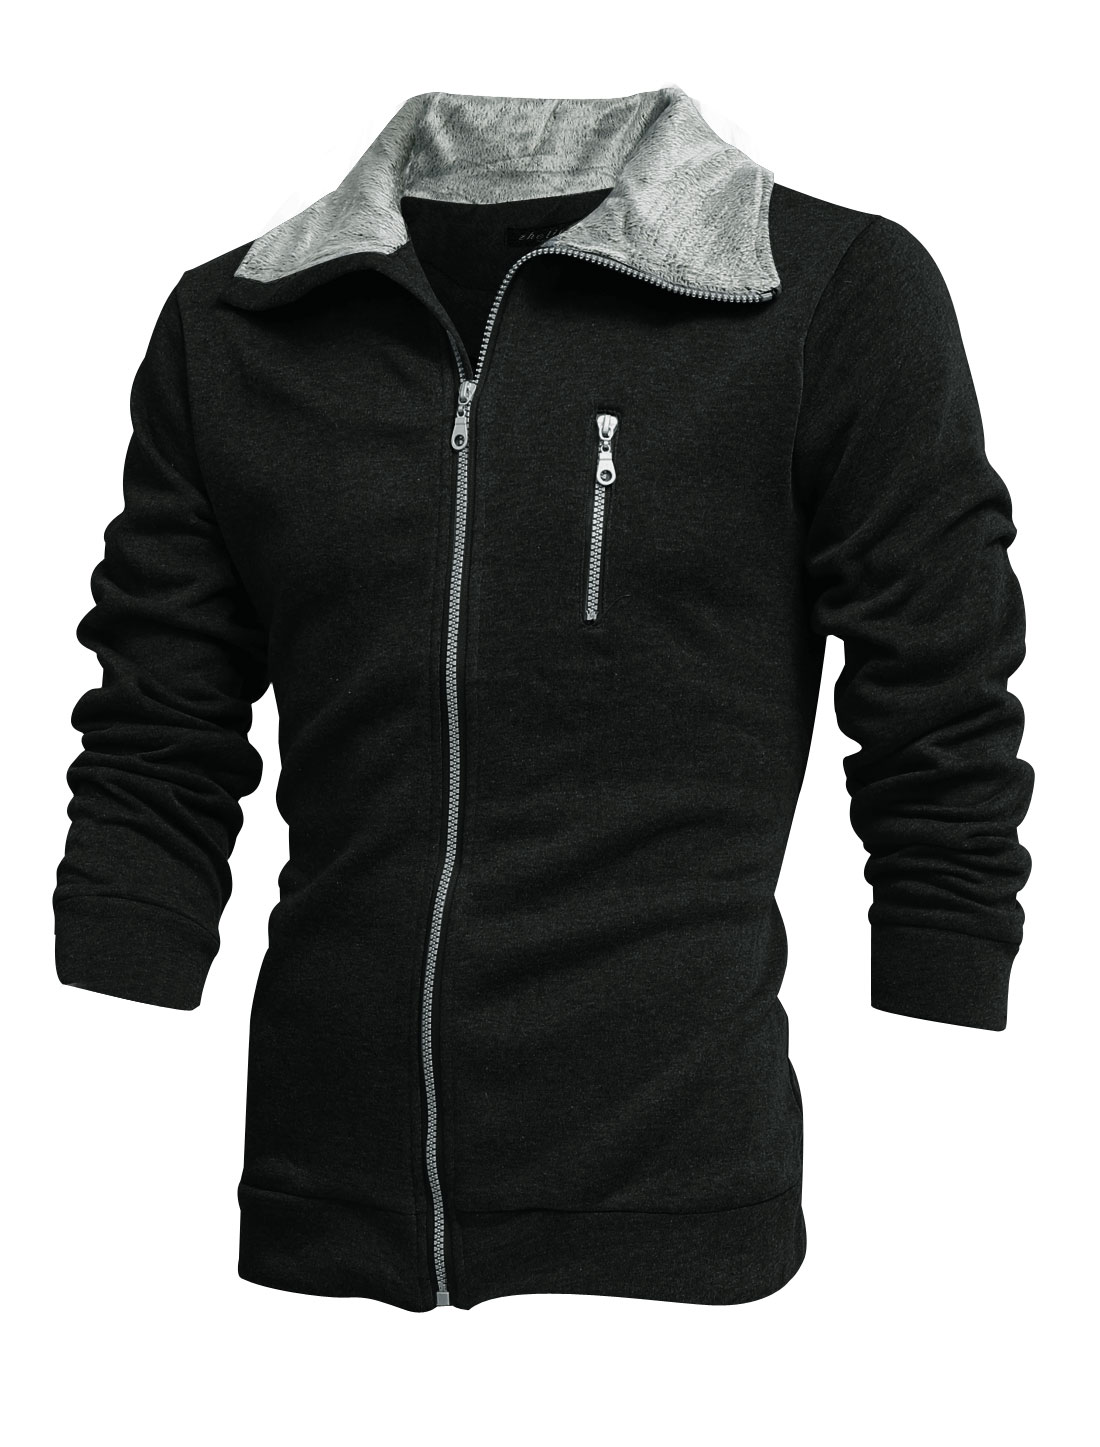 Men Fleece Turndown Collar Zip-Up Pocket Decor Casual Jacket Black M